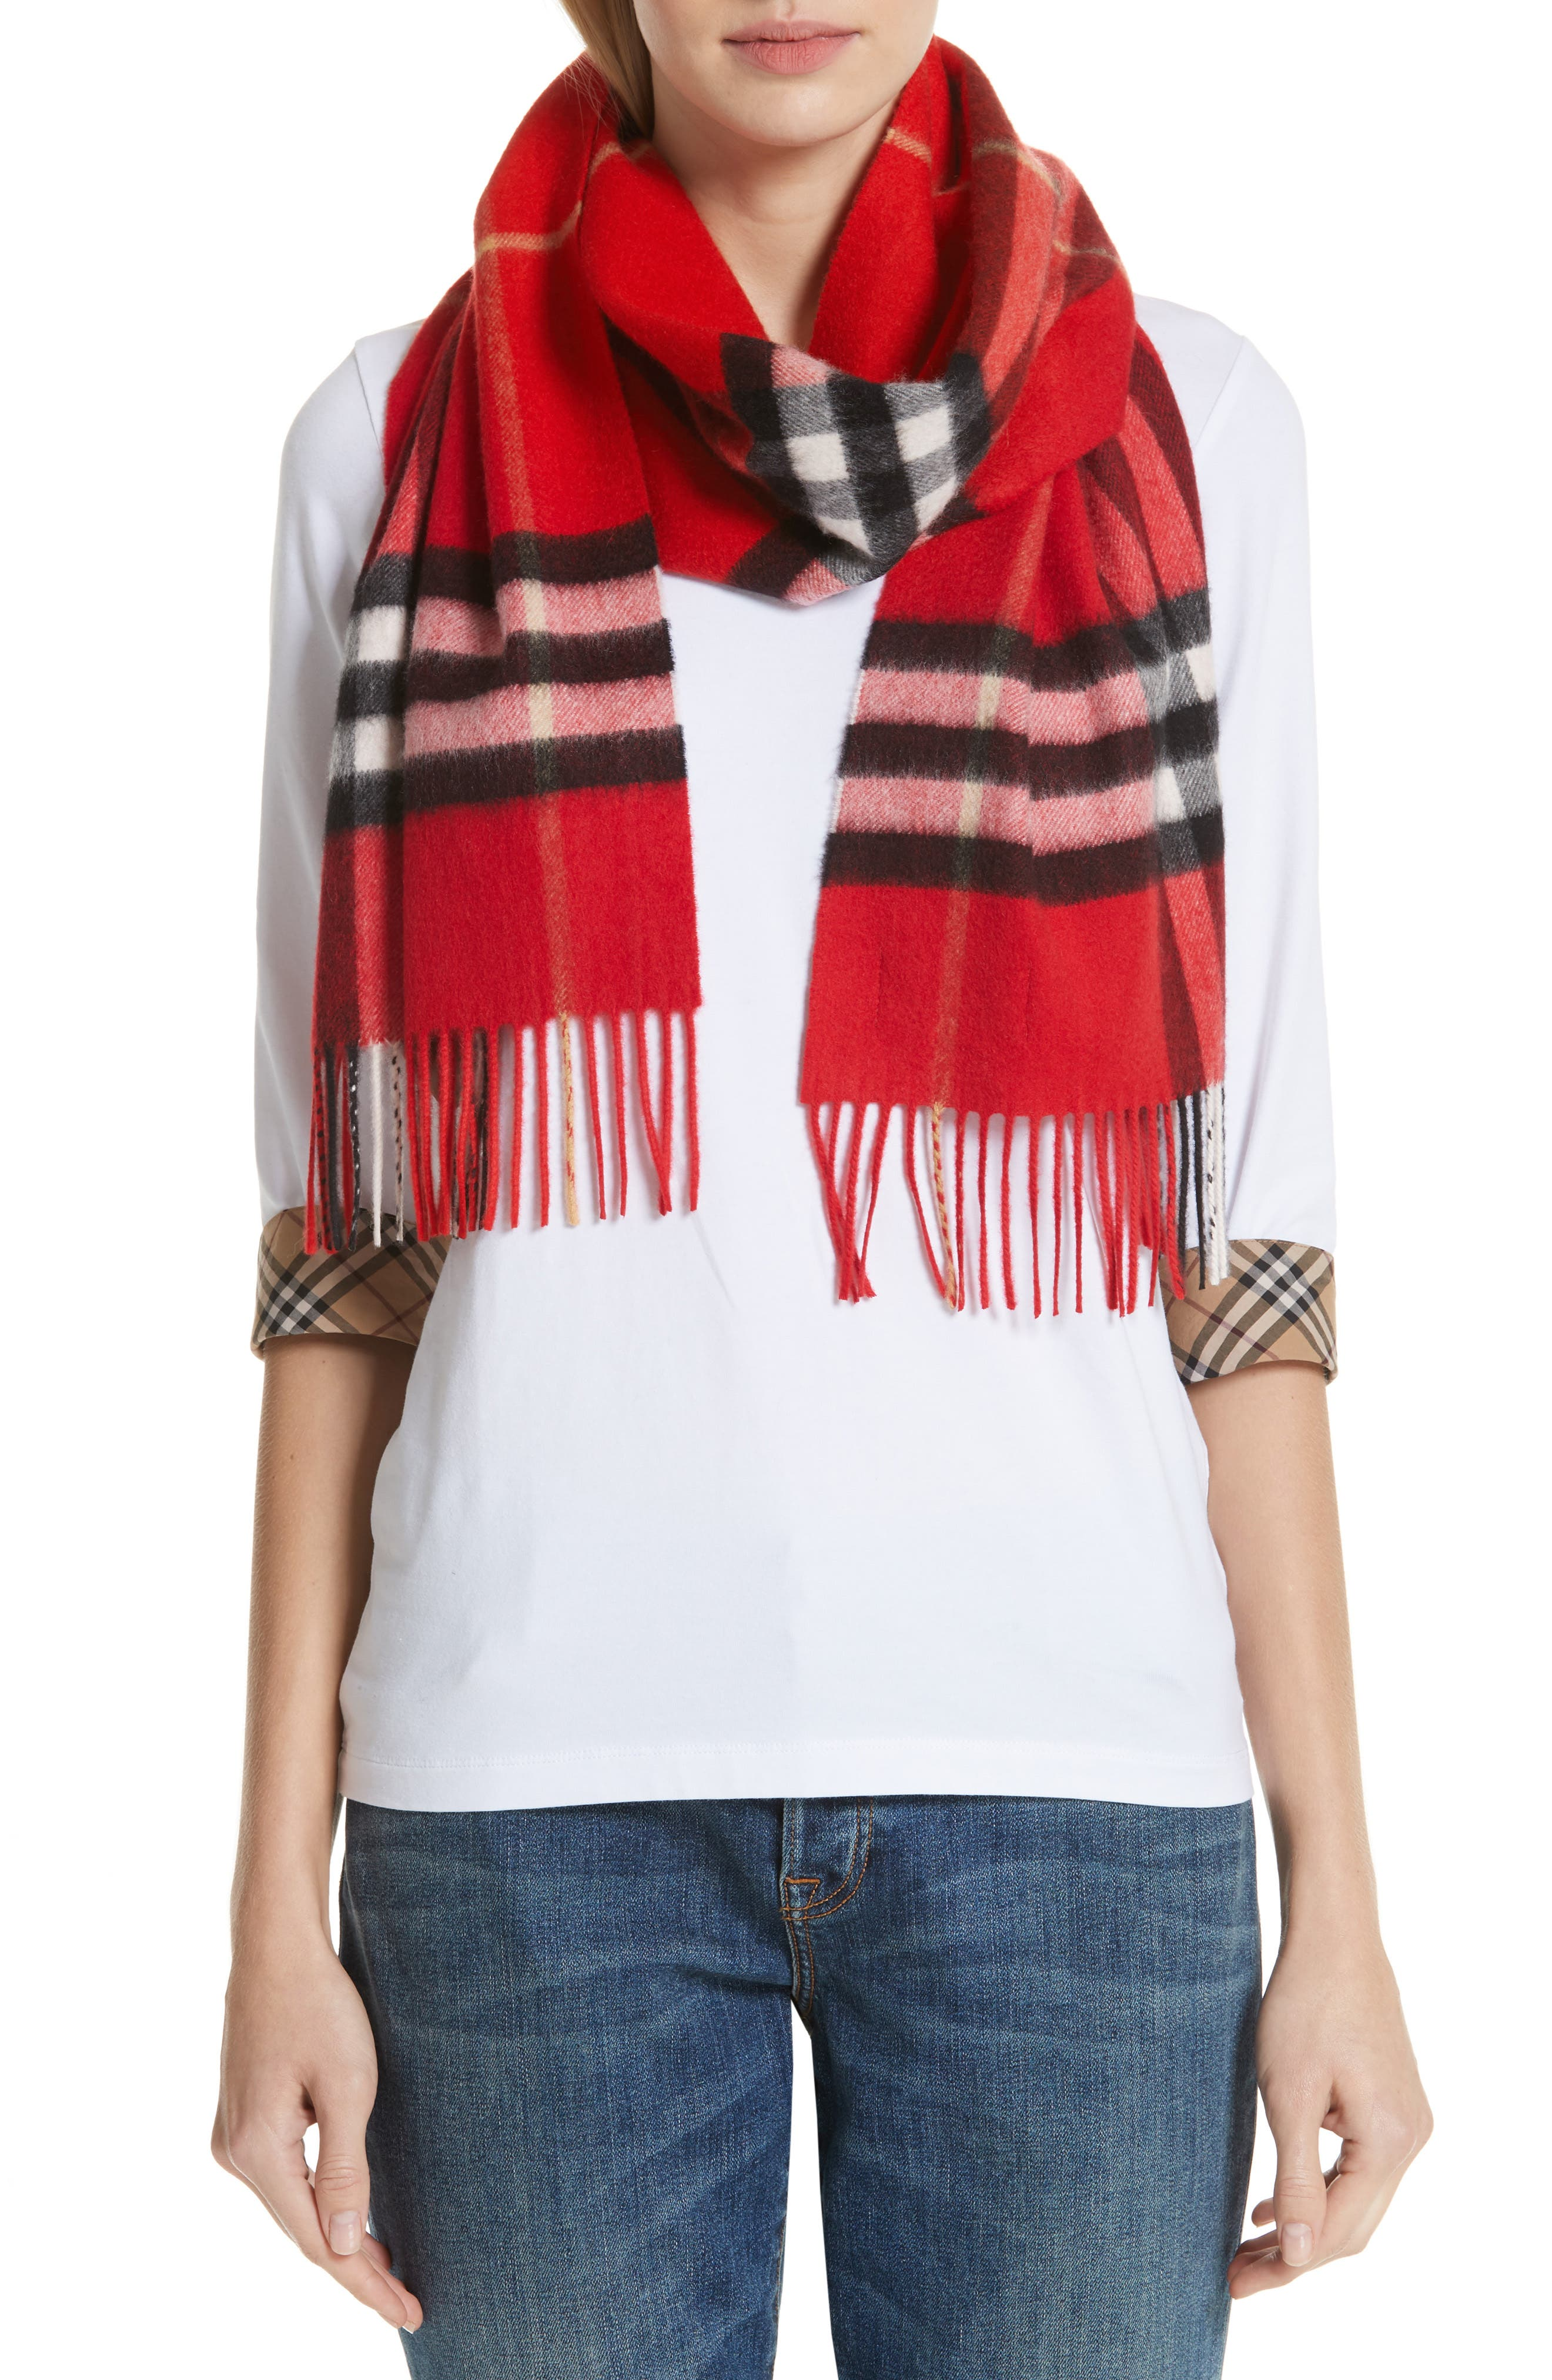 BURBERRY,                             Giant Check Cashmere Scarf,                             Main thumbnail 1, color,                             BRIGHT MILITARY RED